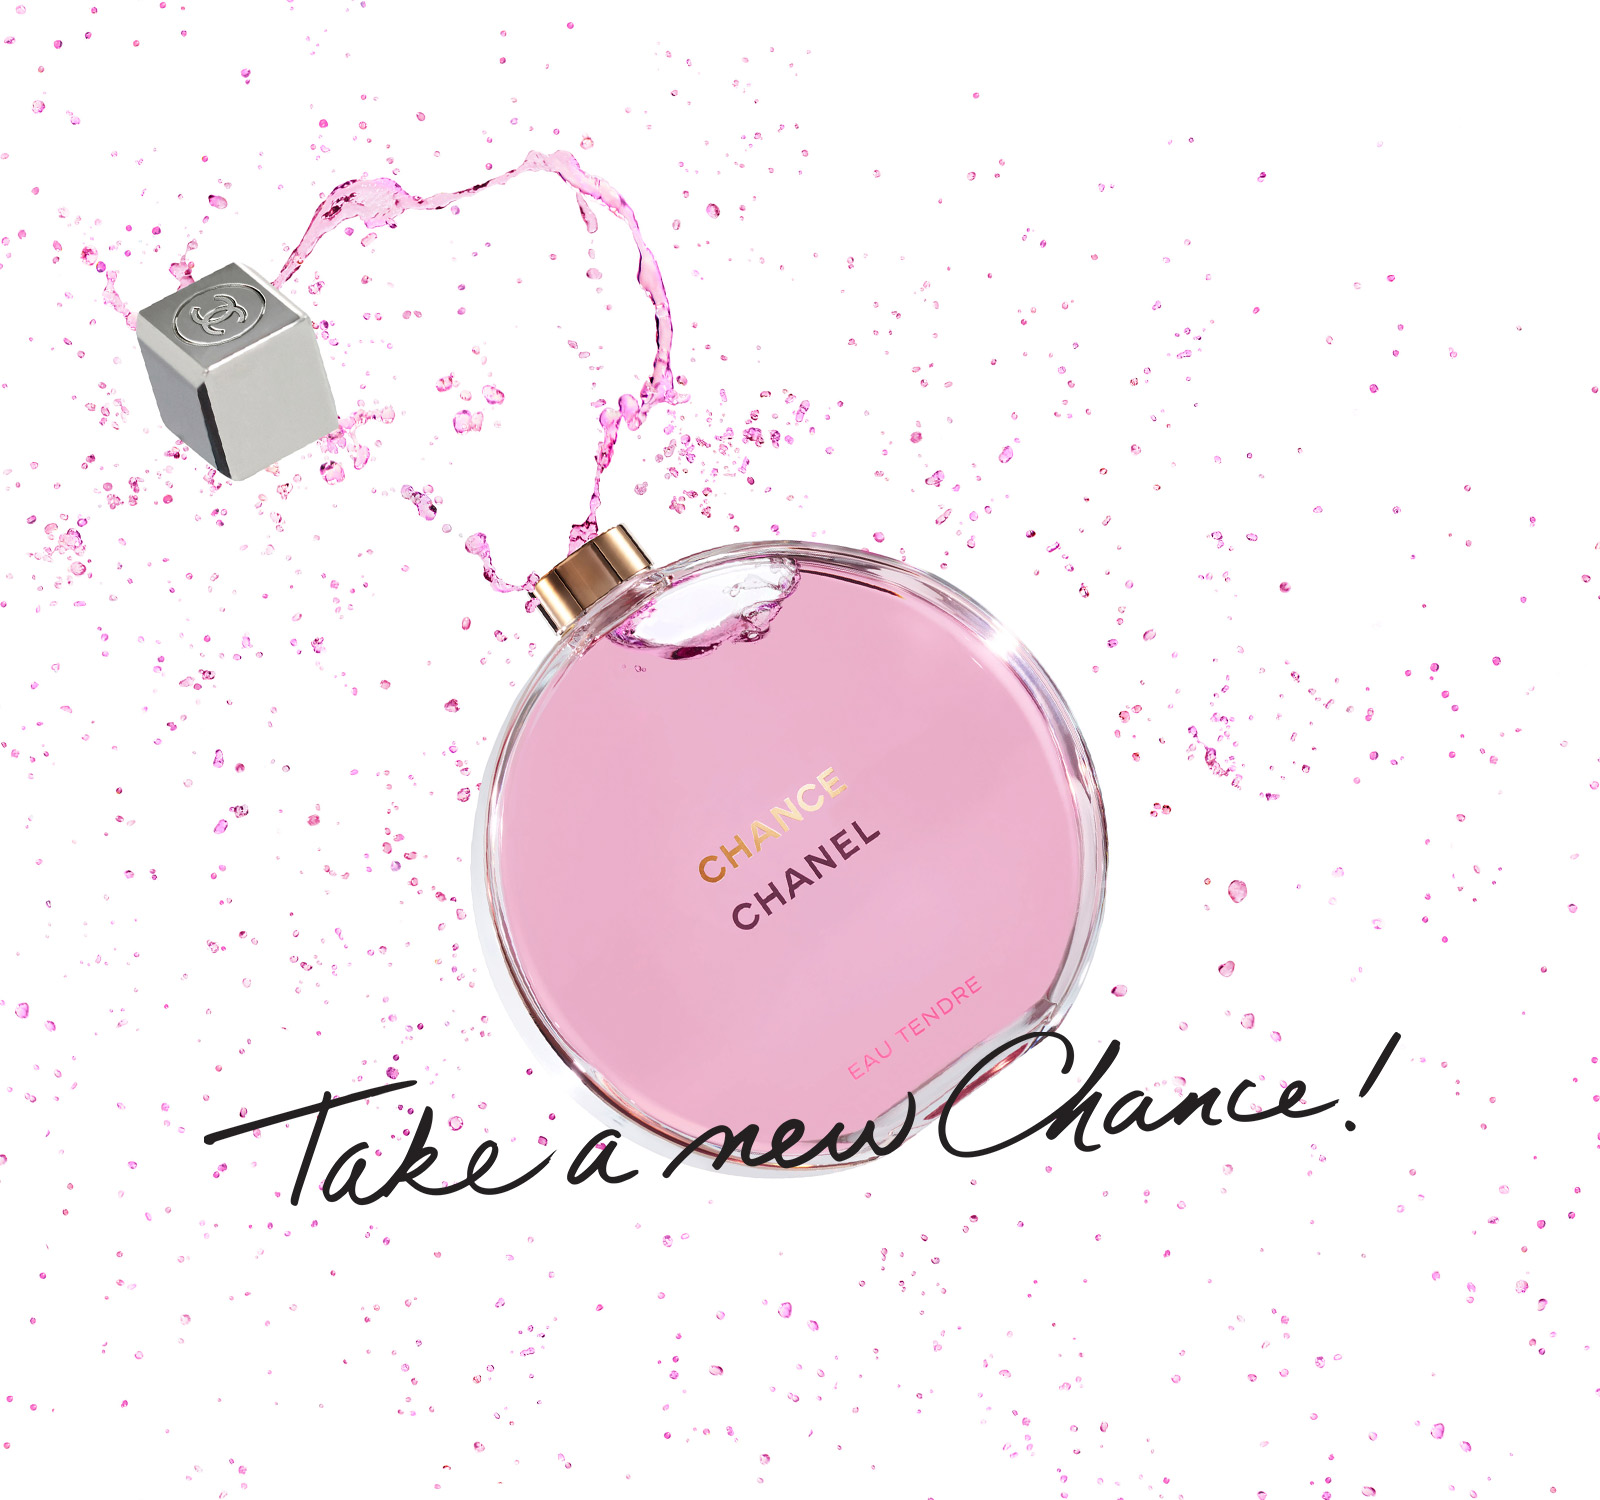 Chance Eau Tendre - CHANEL